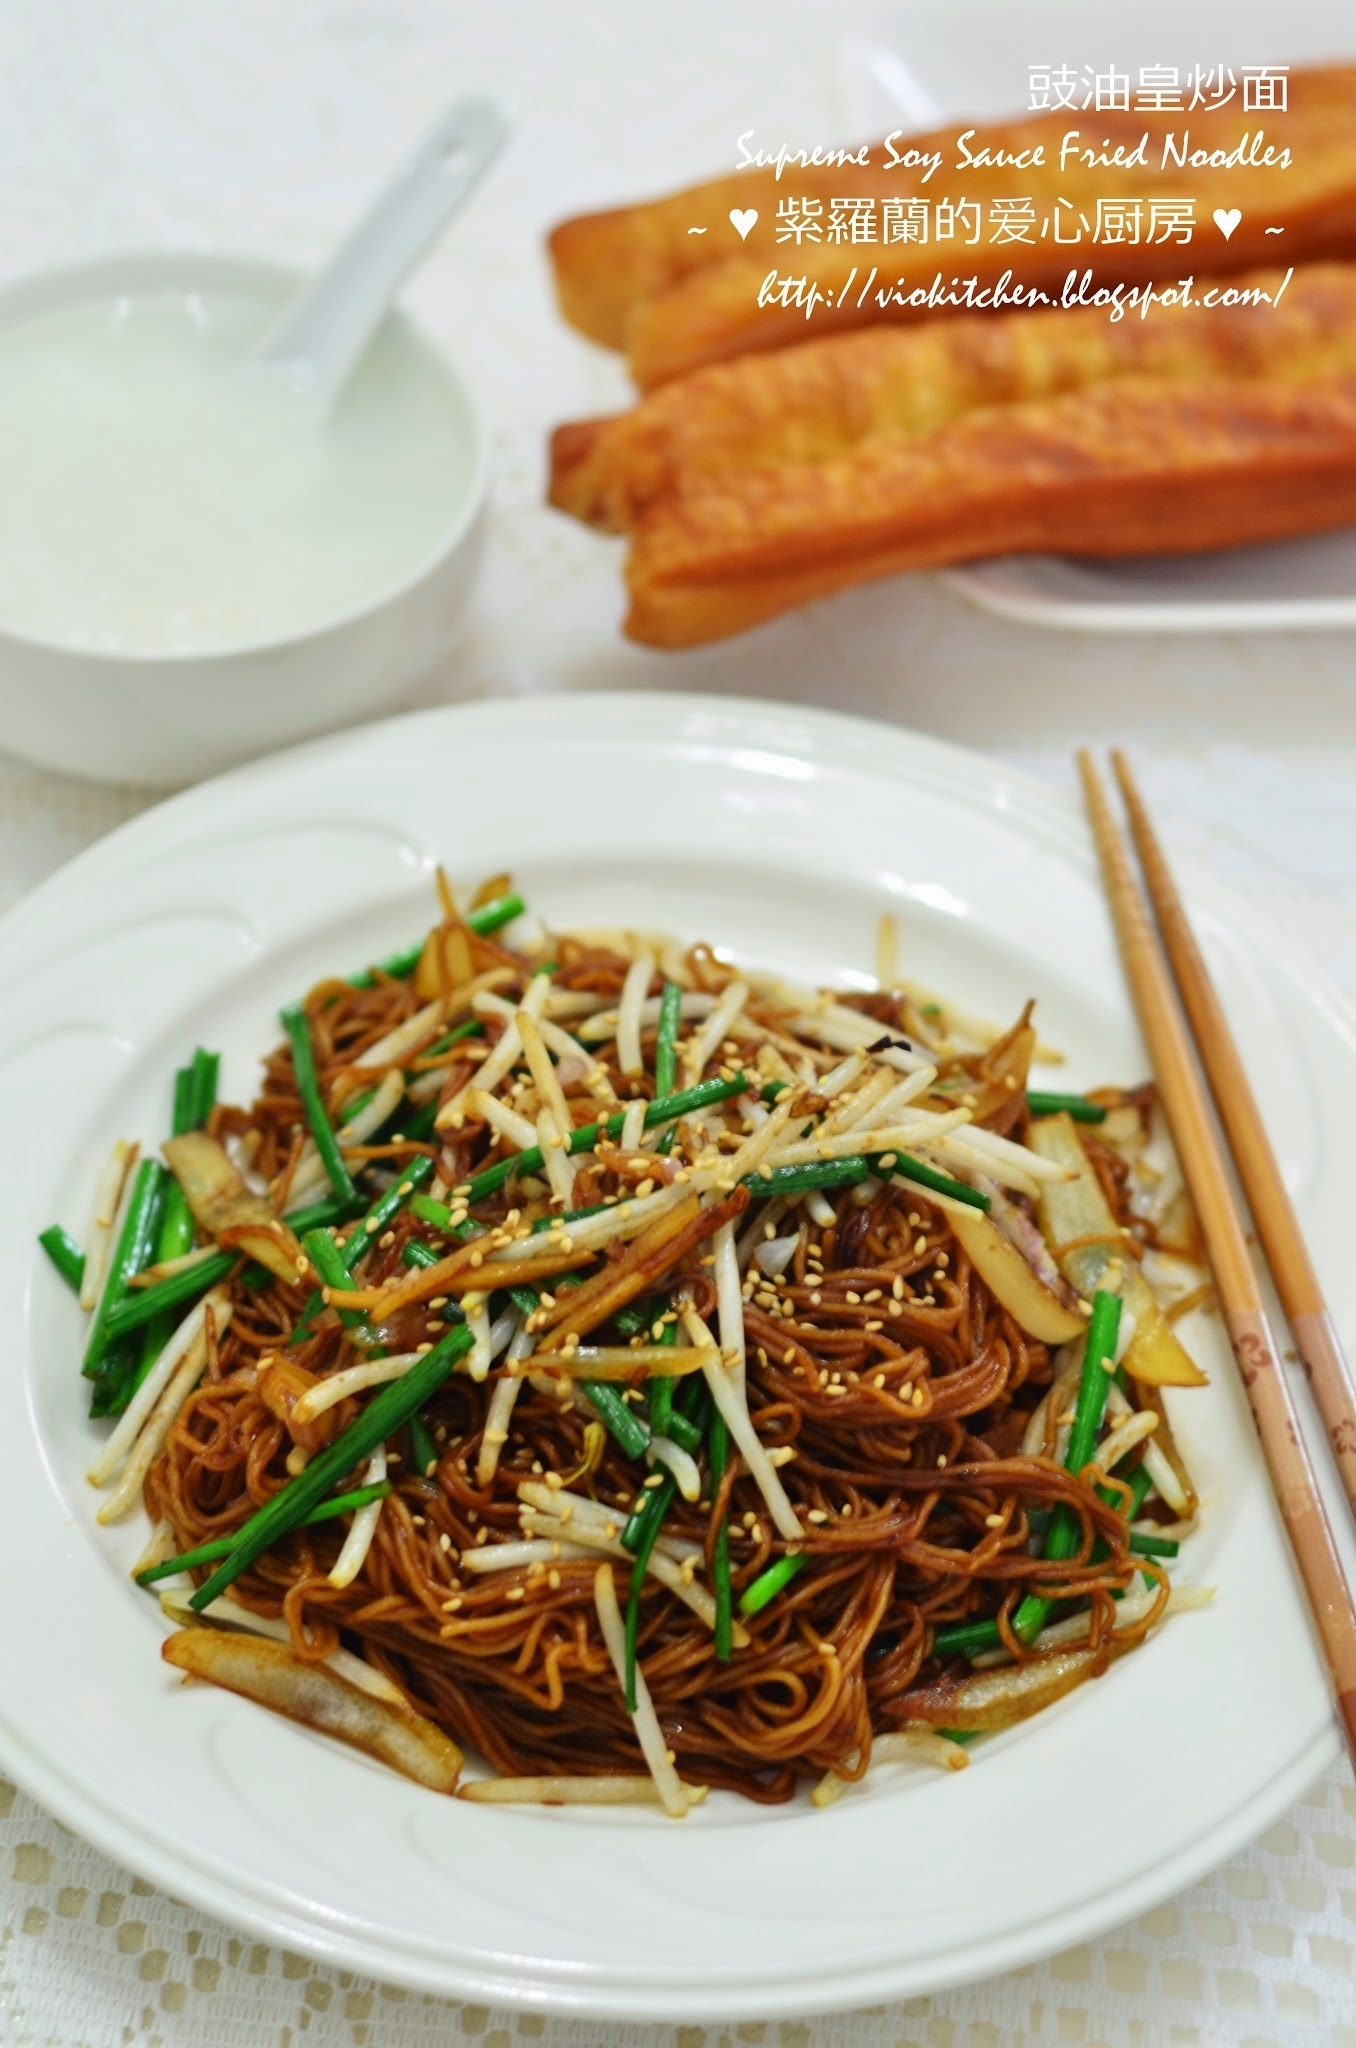 豉油皇炒面 Supreme Soy Sauce Fried Noodles